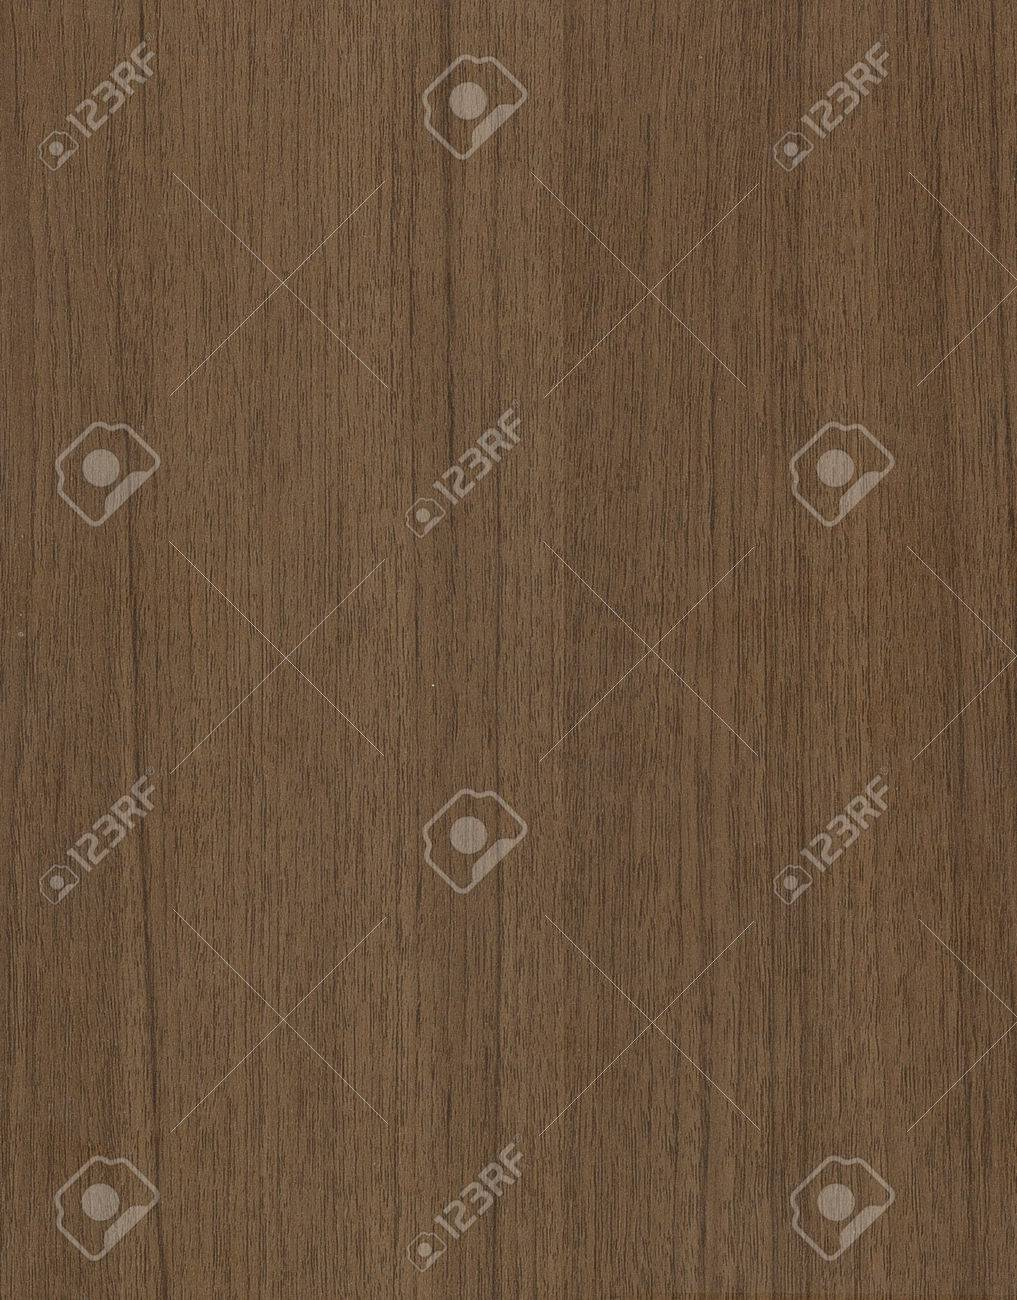 Wood Texture Americano Nature Painted With Acrylic Paint Decorative